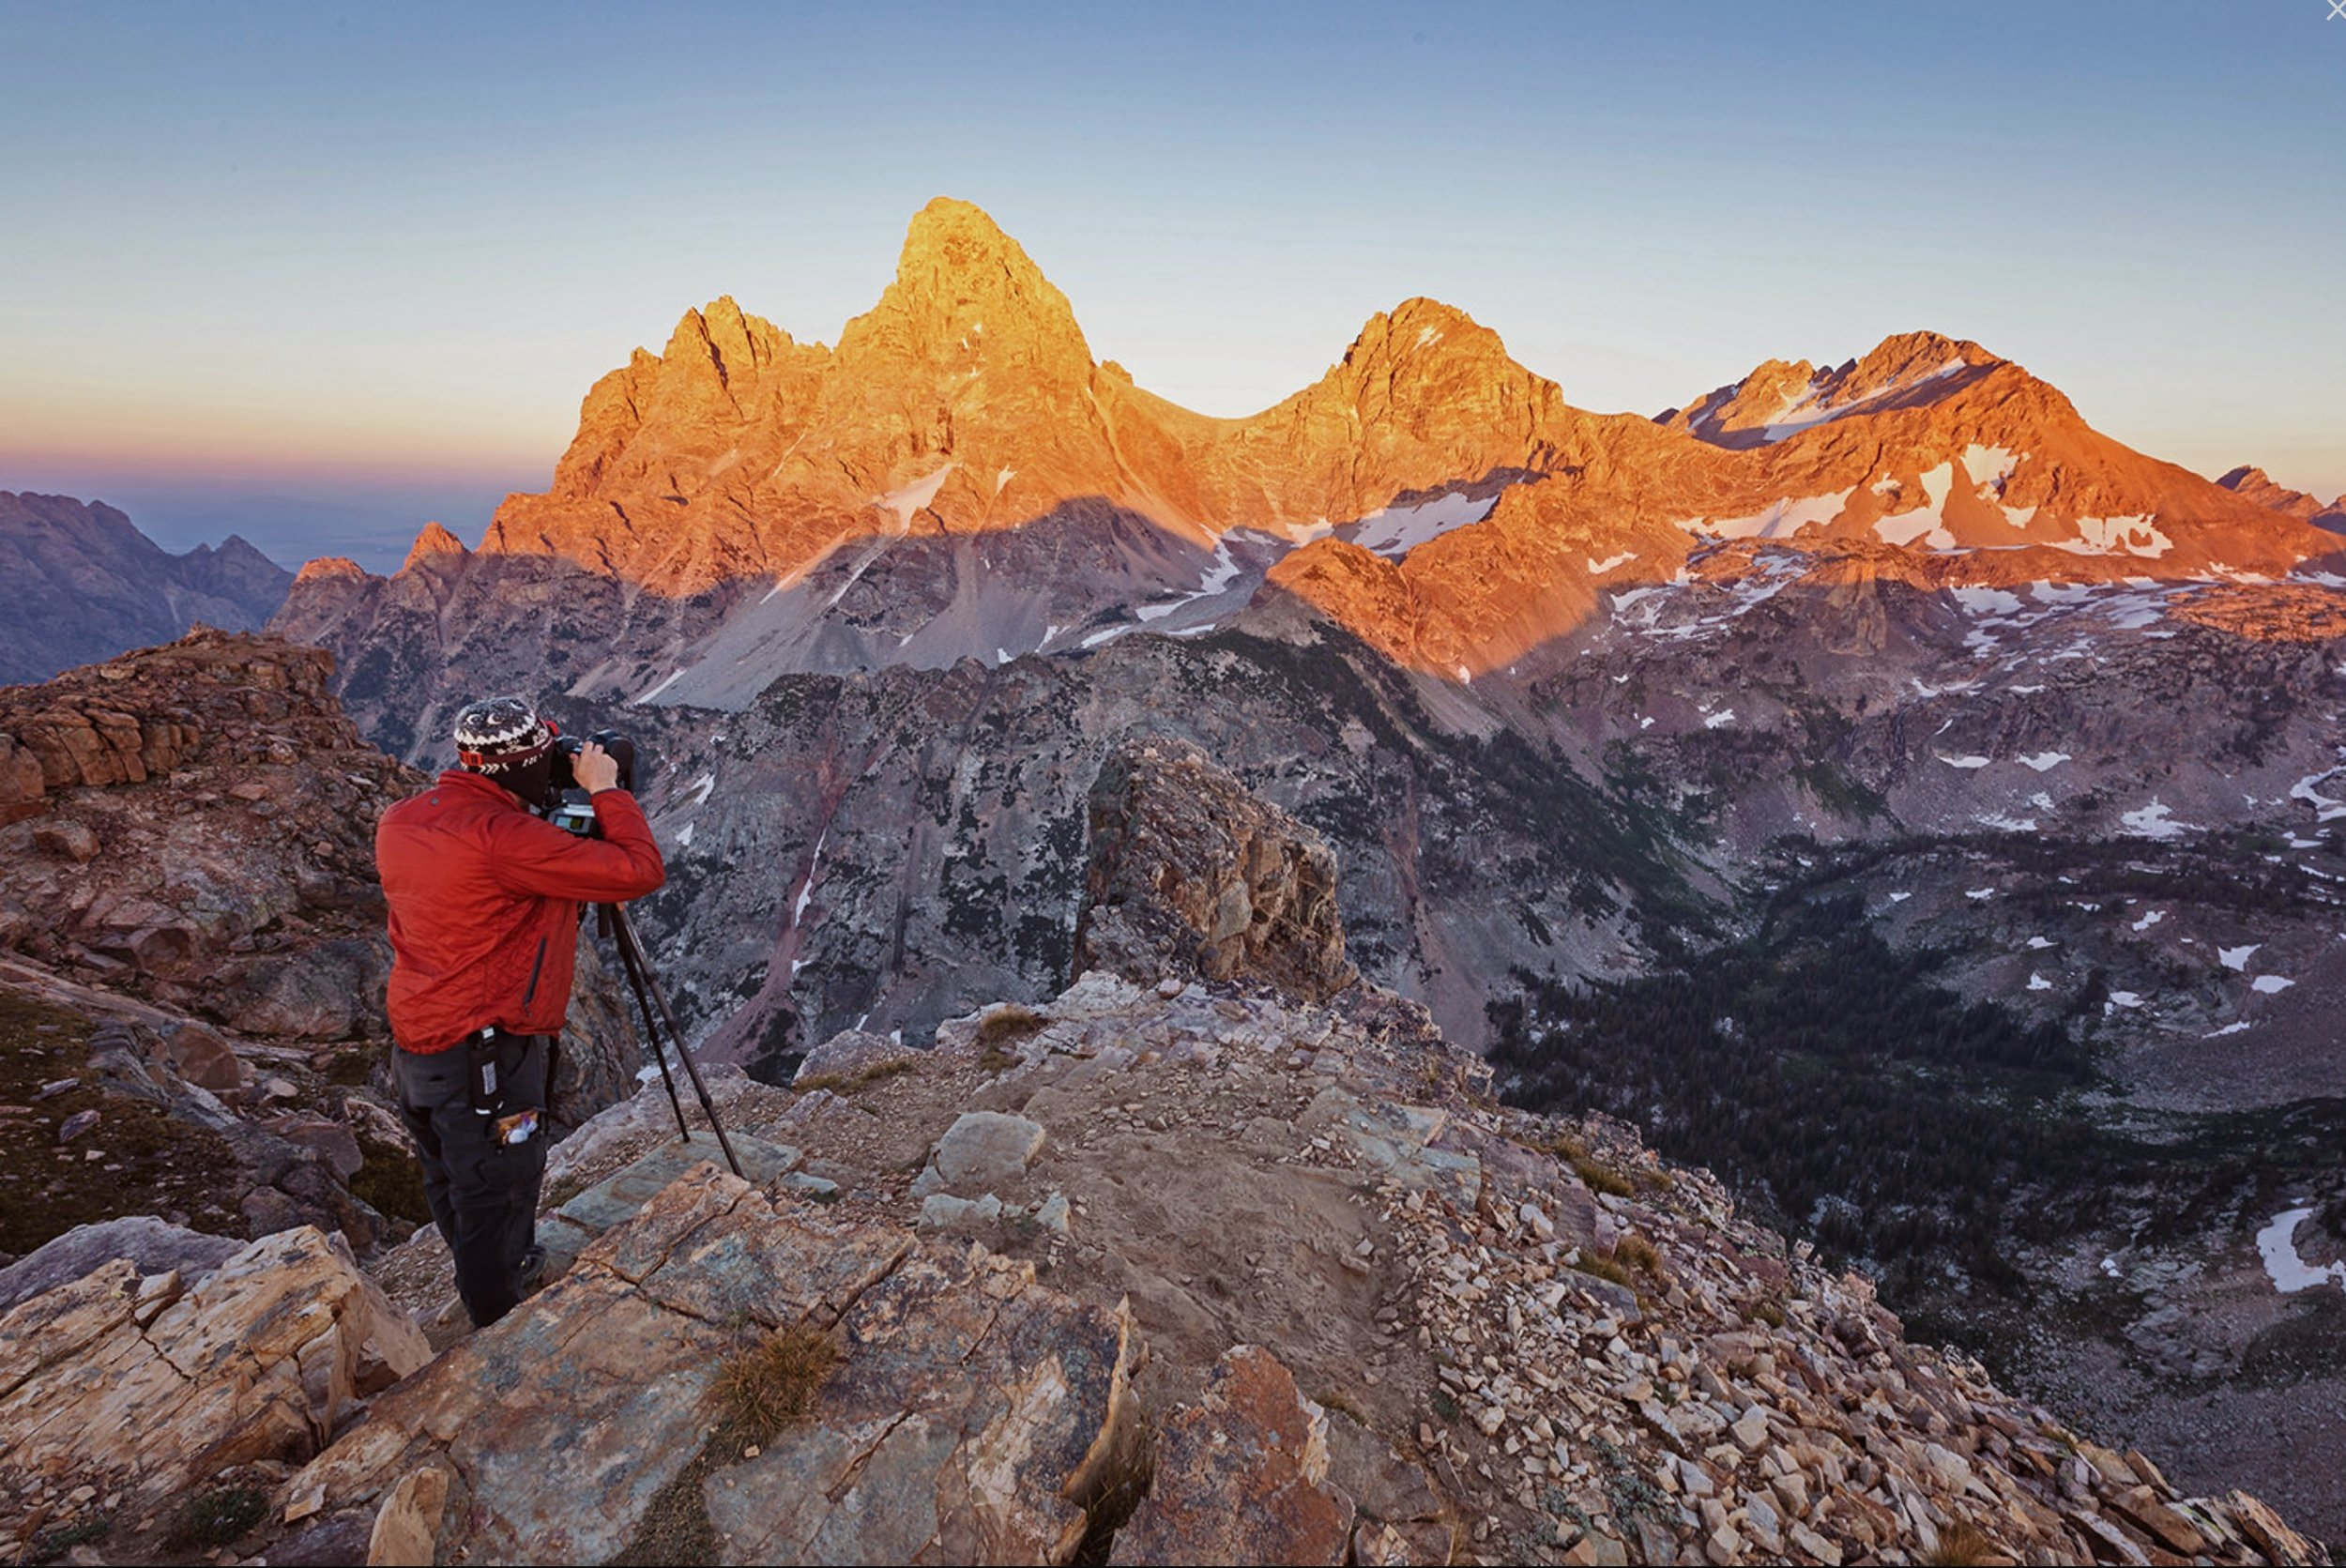 Setting up a photograph from the West side of Grand Teton National Park on August 21, 2017. (c) Chris Fabregas